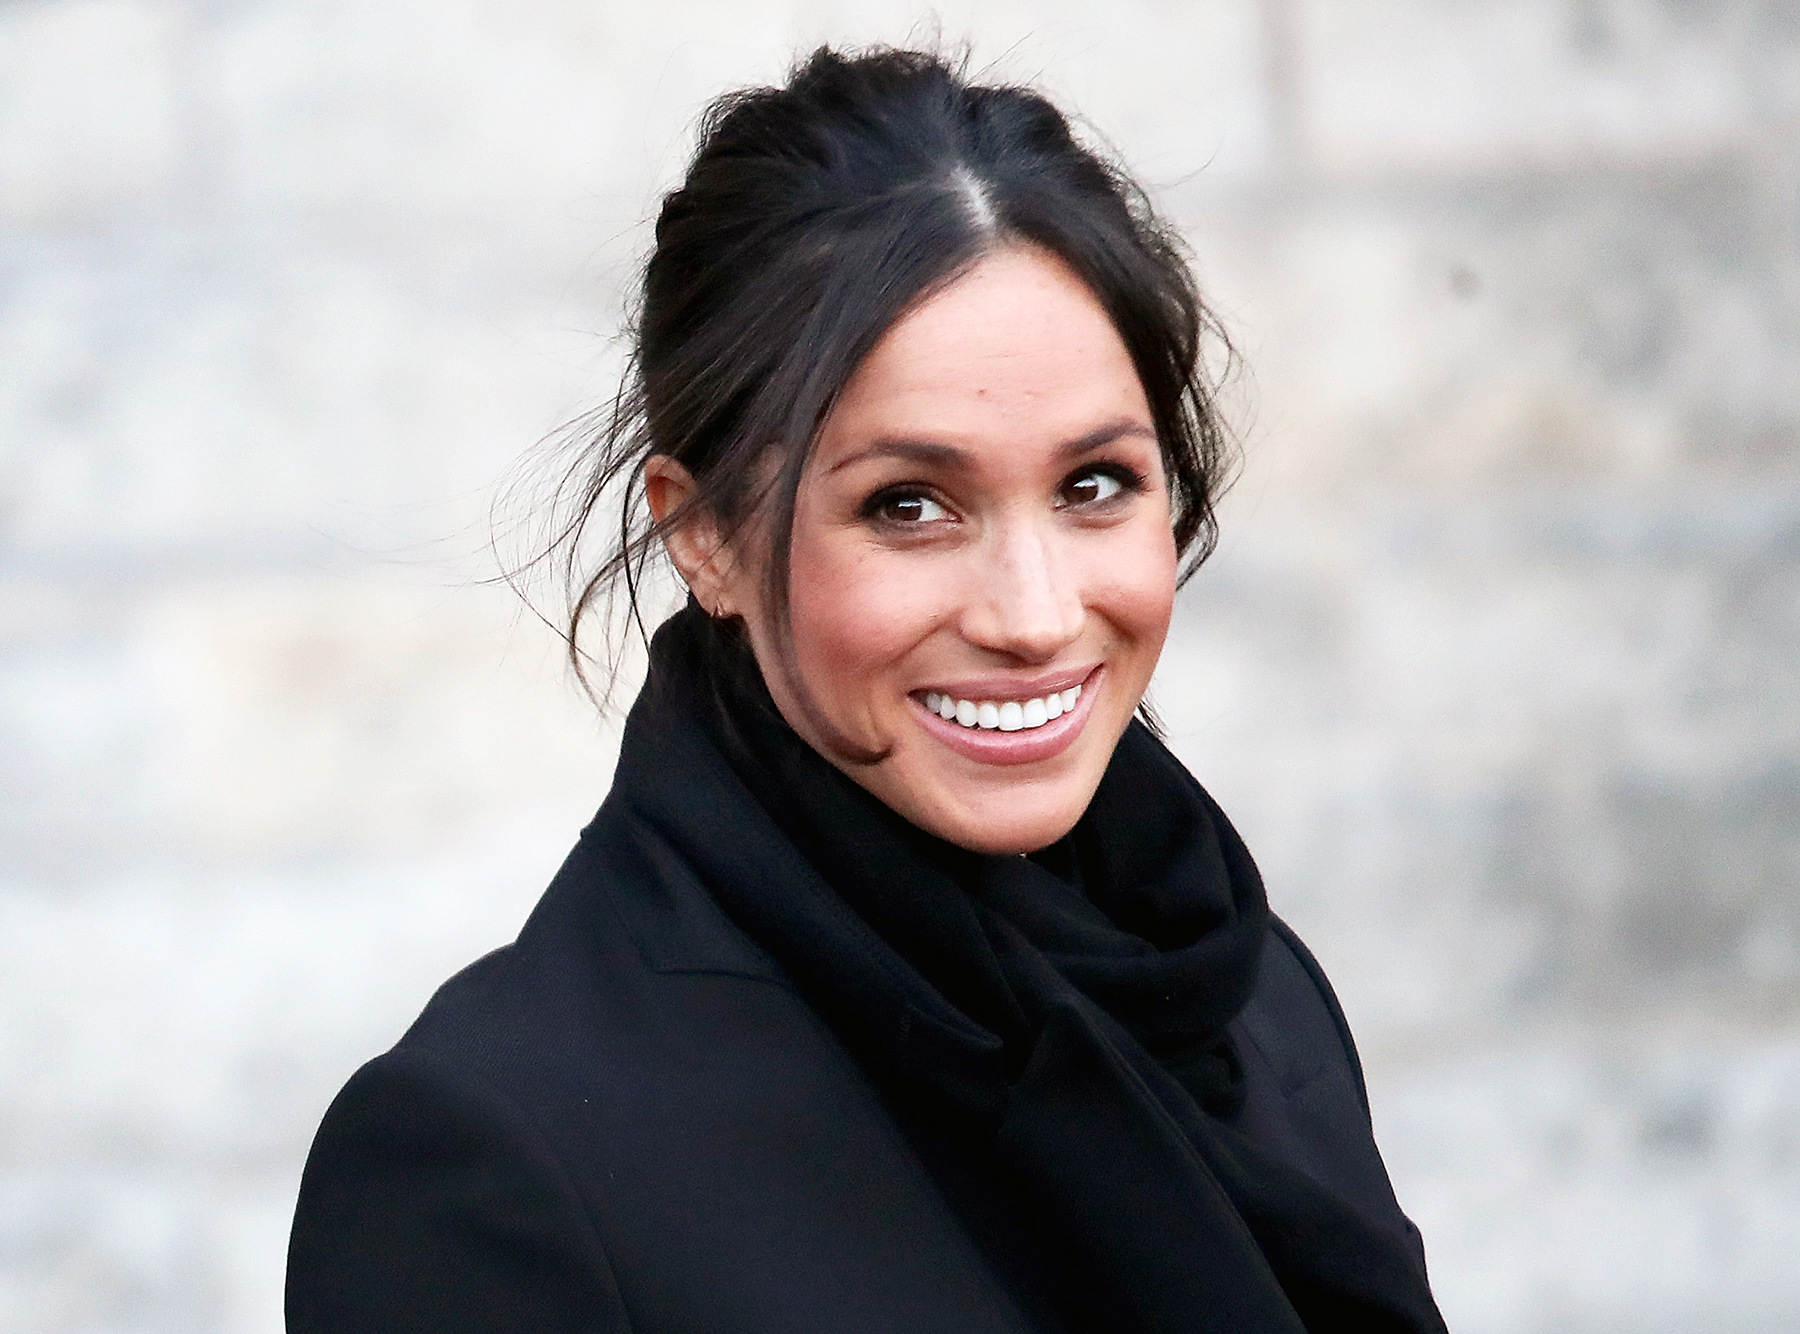 Meghan Markle's Nephew And His Mom Didn't Get Invitation To Royal Wedding